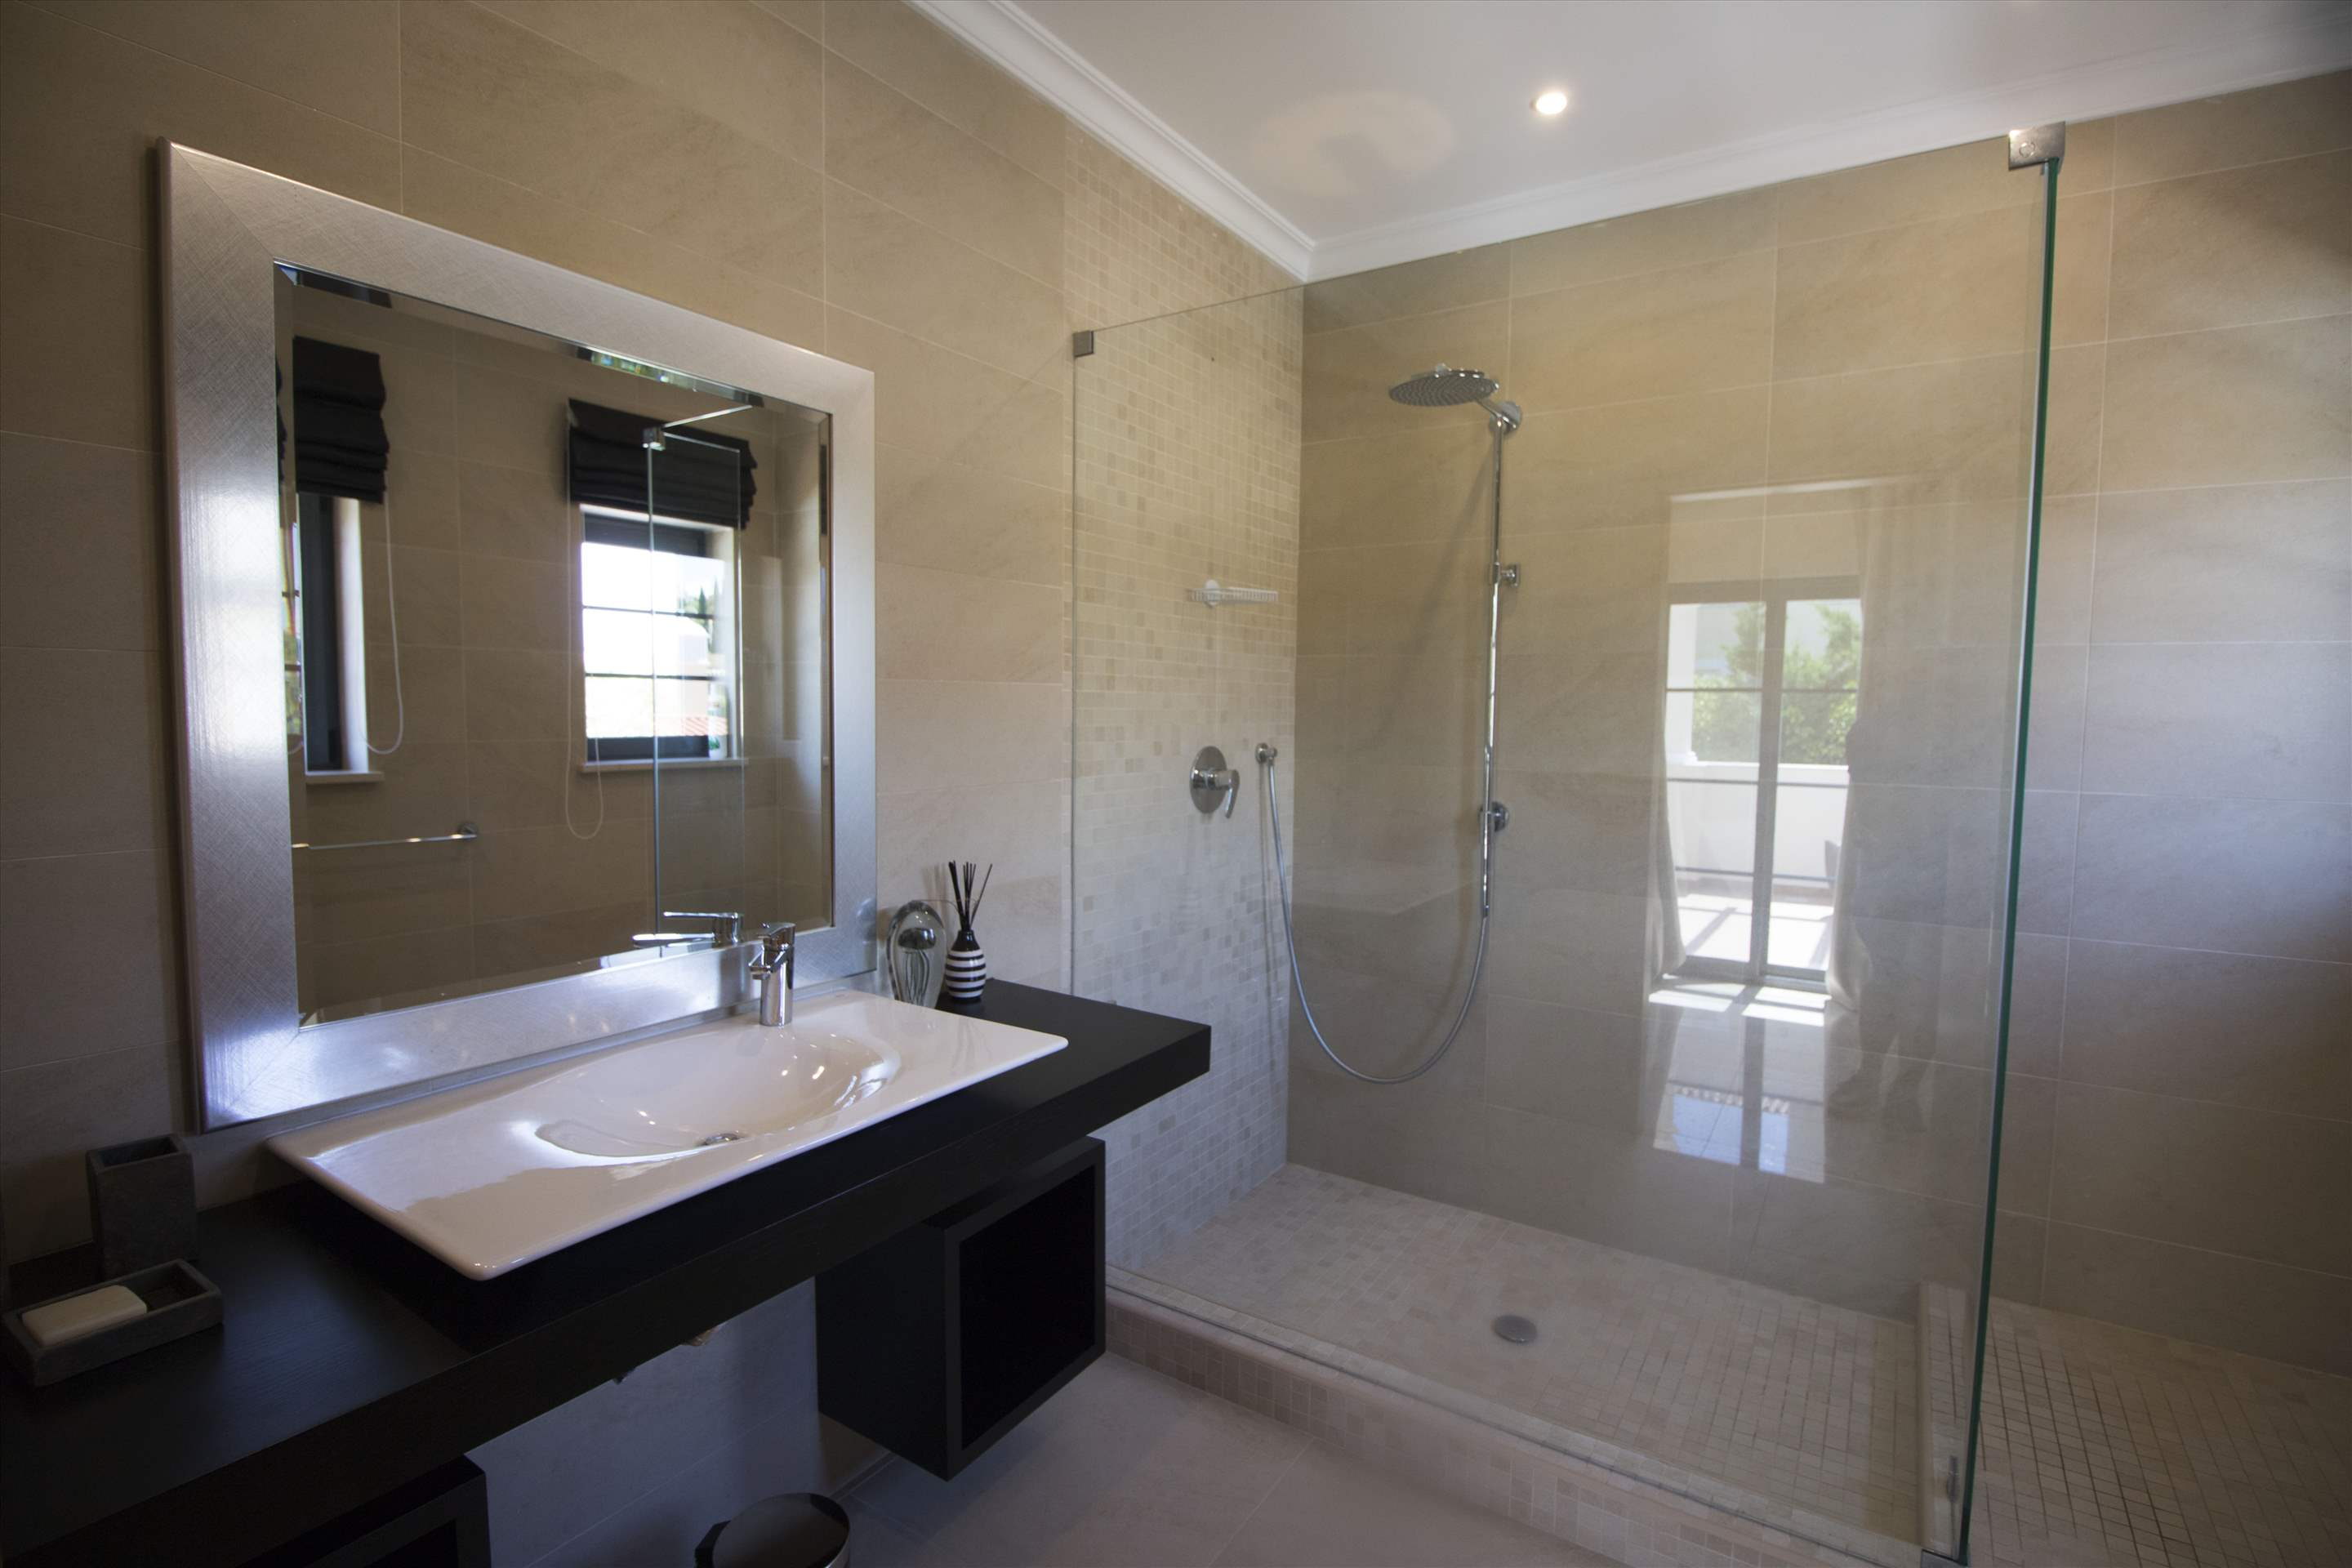 Villa Meryl, 5 bedroom villa in Vale do Lobo, Algarve Photo #29